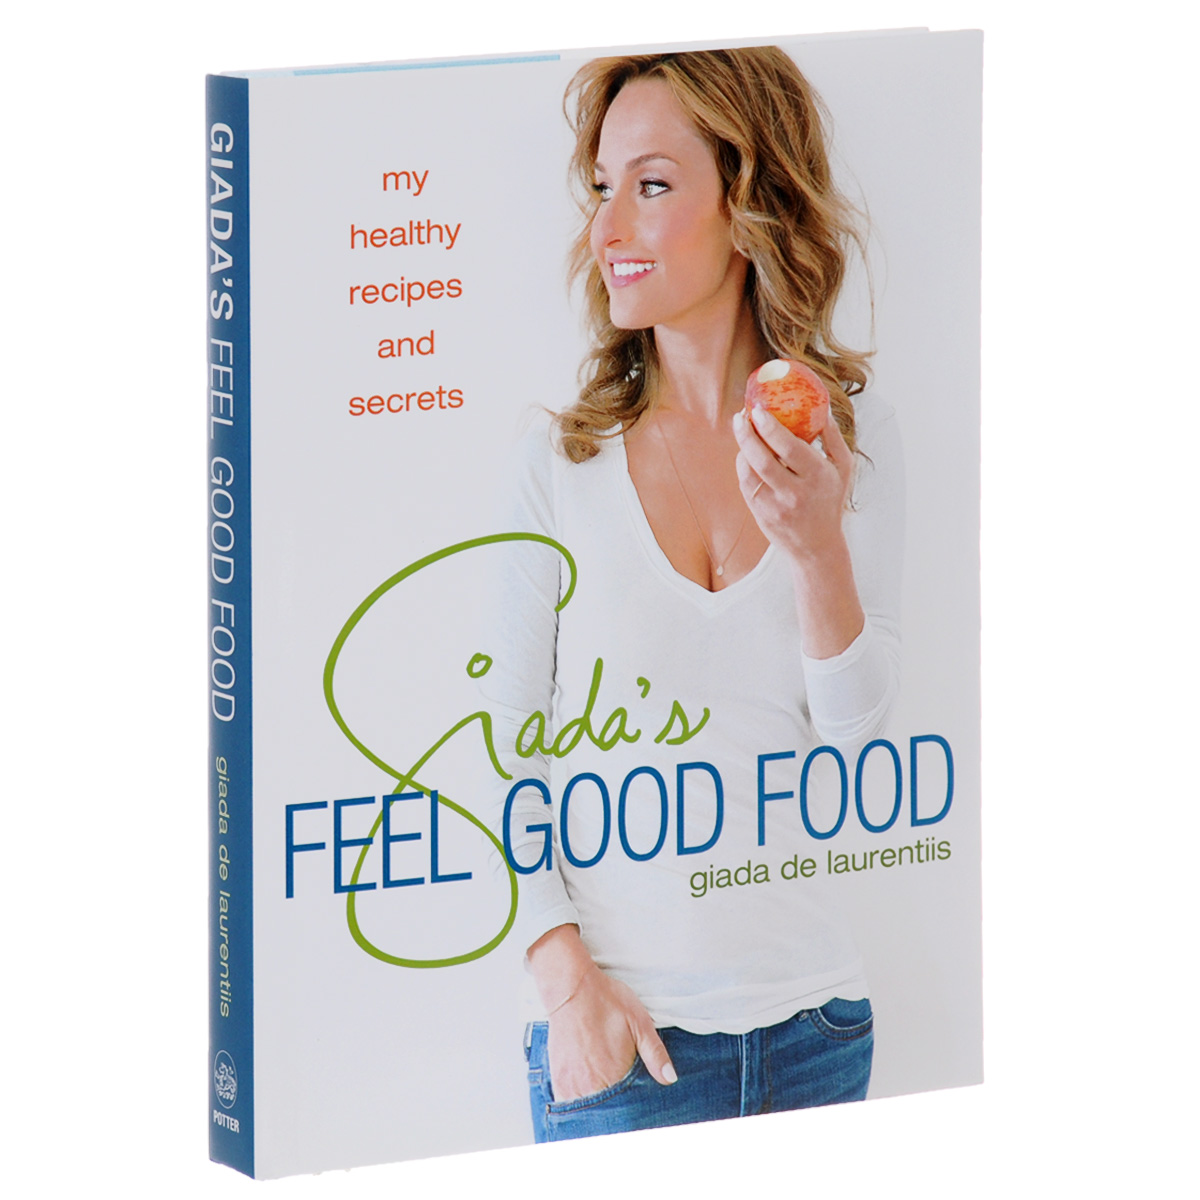 Giadas's Feel Good Food: My Healthy Recipes and Secrets everyday italian 125 simple and delicious recipes